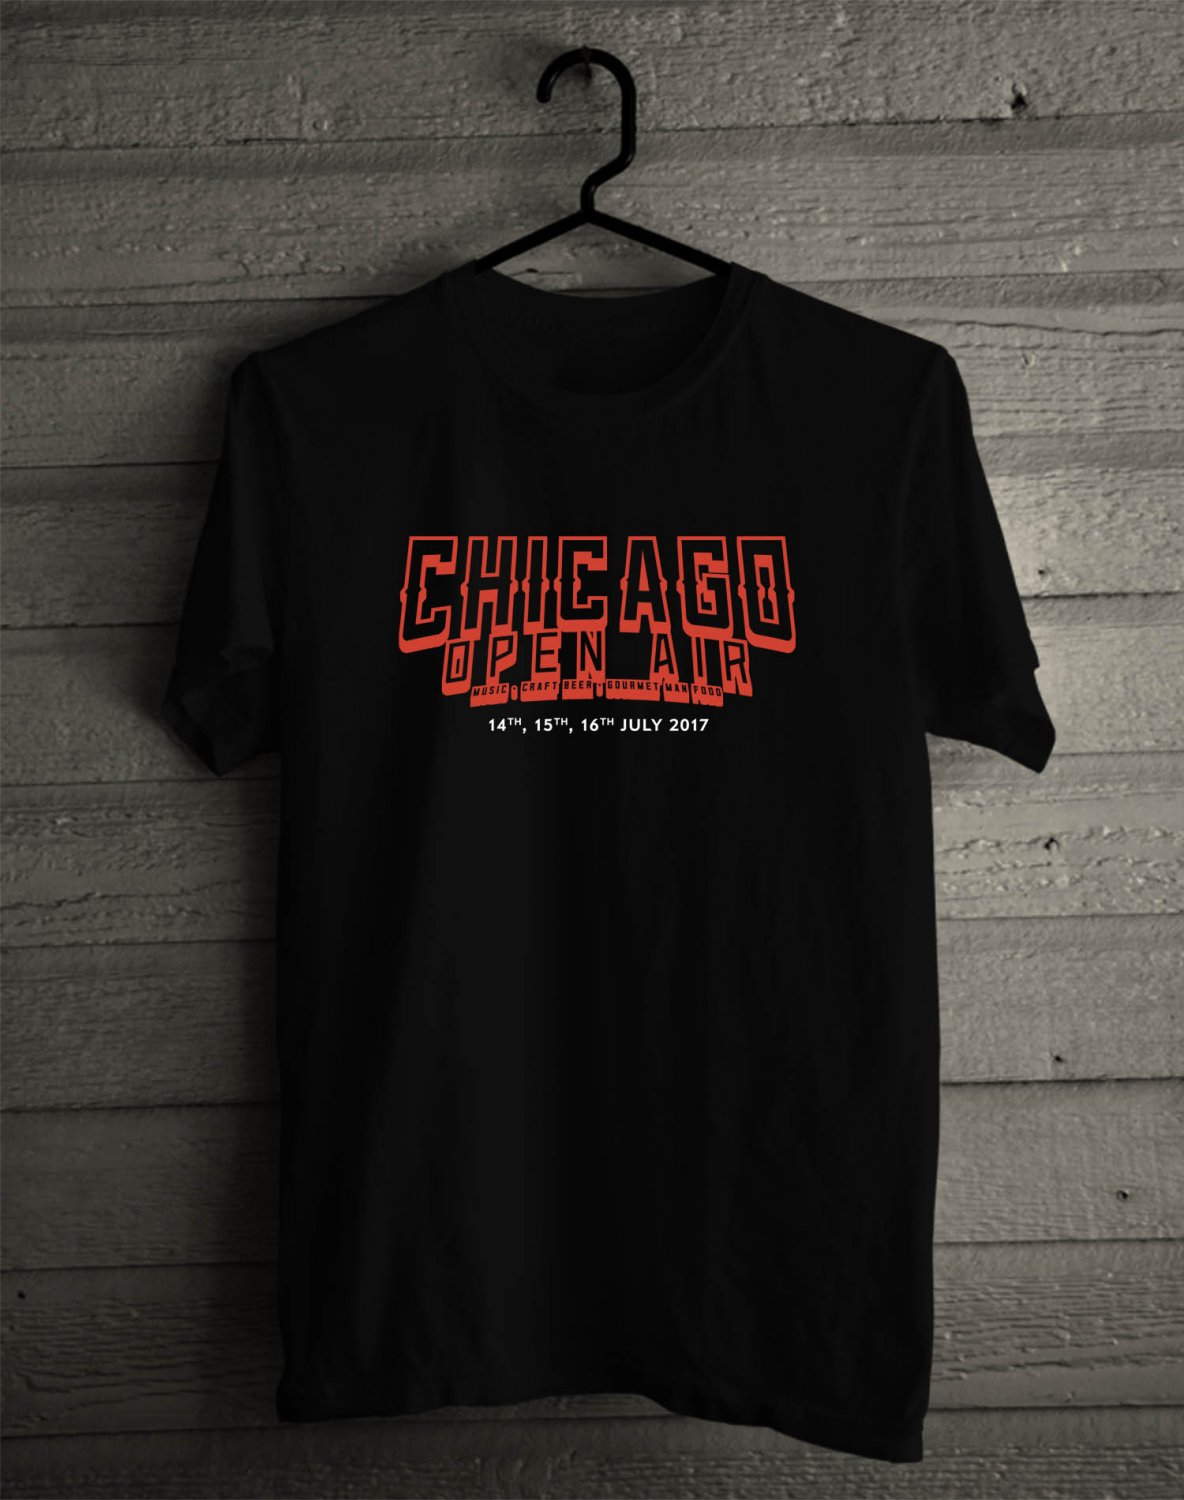 Chicago Open Air Festival Jul 2017 Black Tee's Front Side by Complexart z2